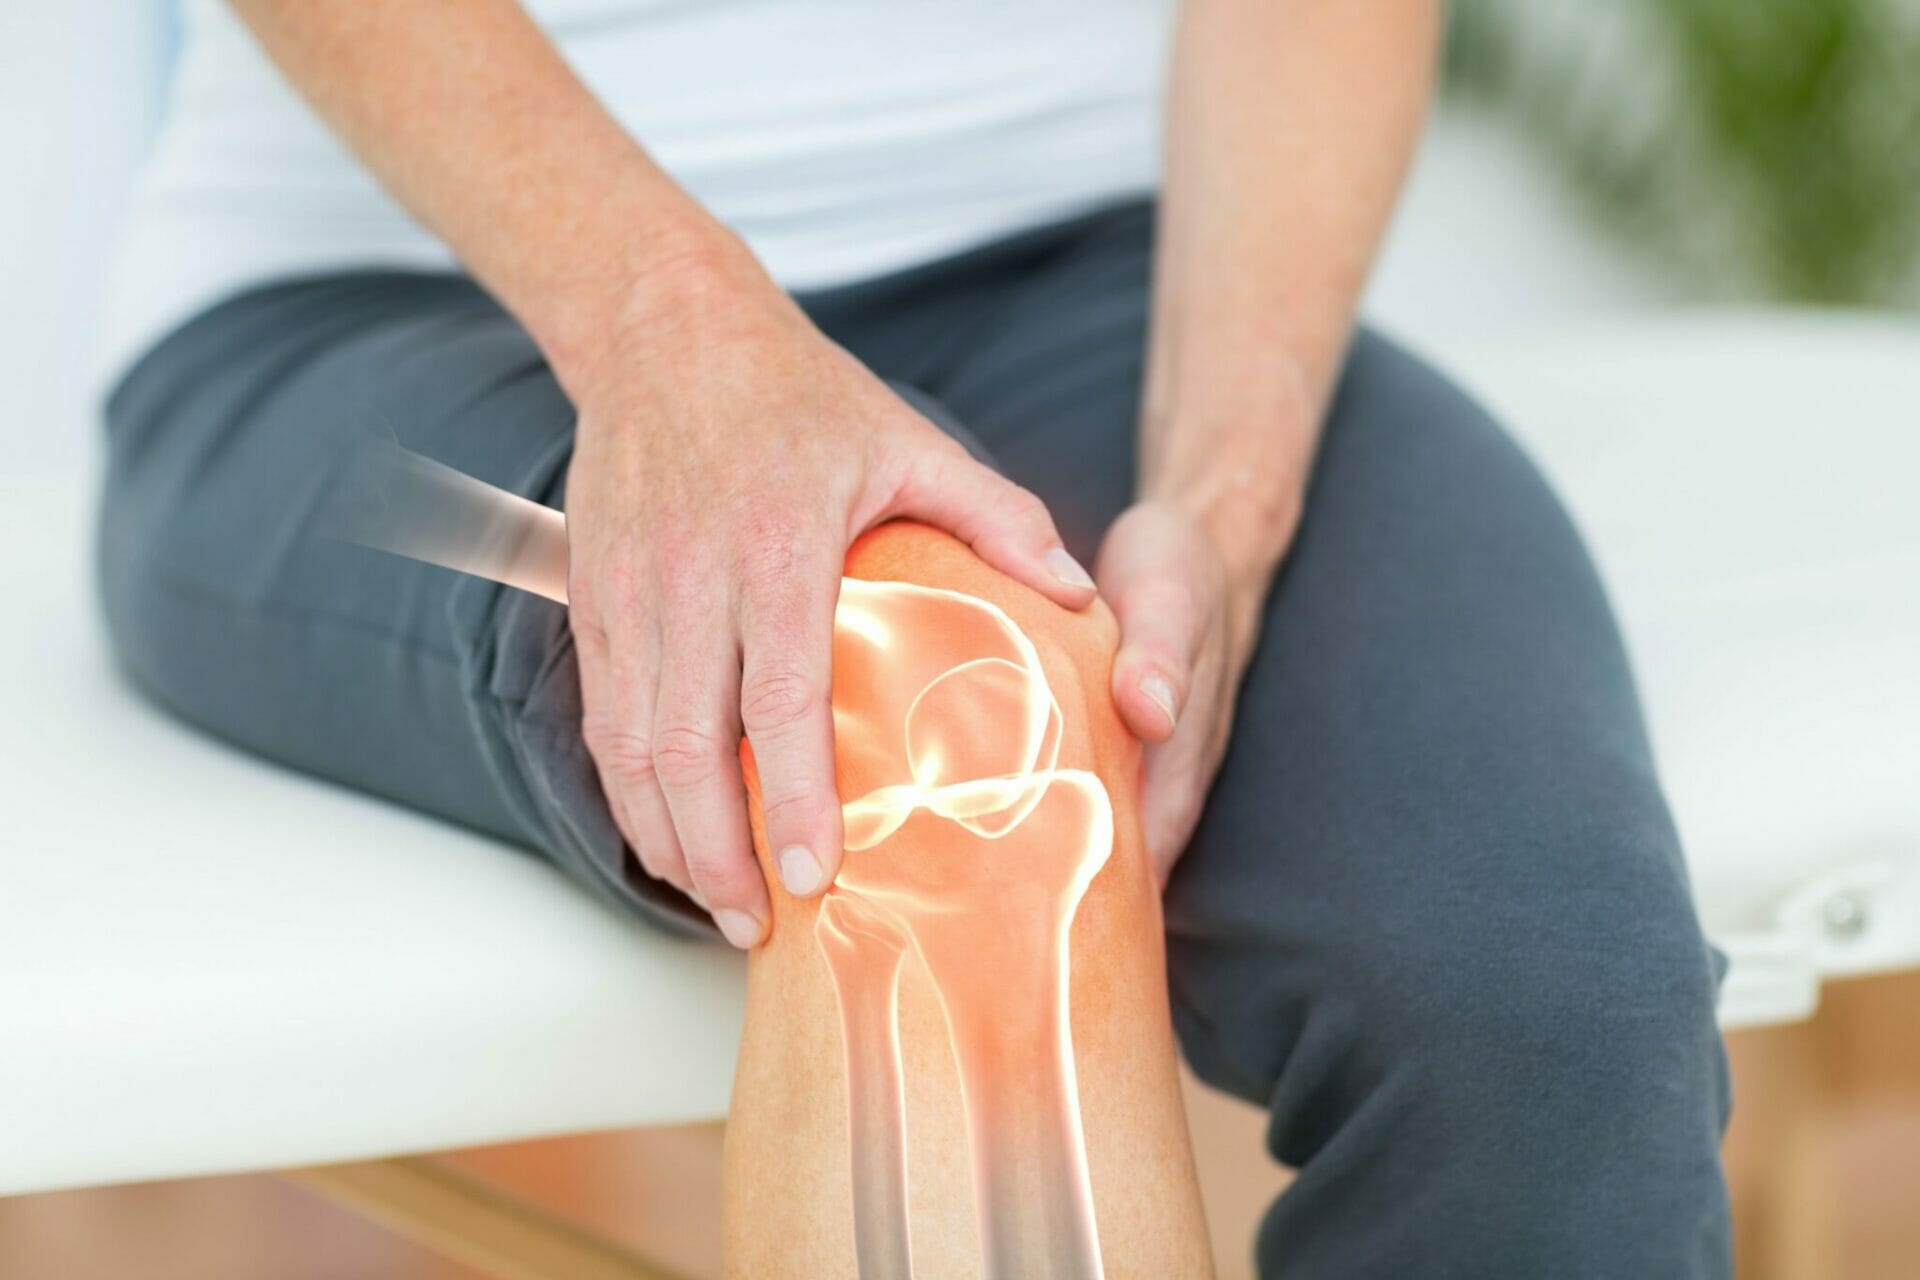 I've been told I have wear and tear in my knee, is it wear and tear or anterior knee pain?